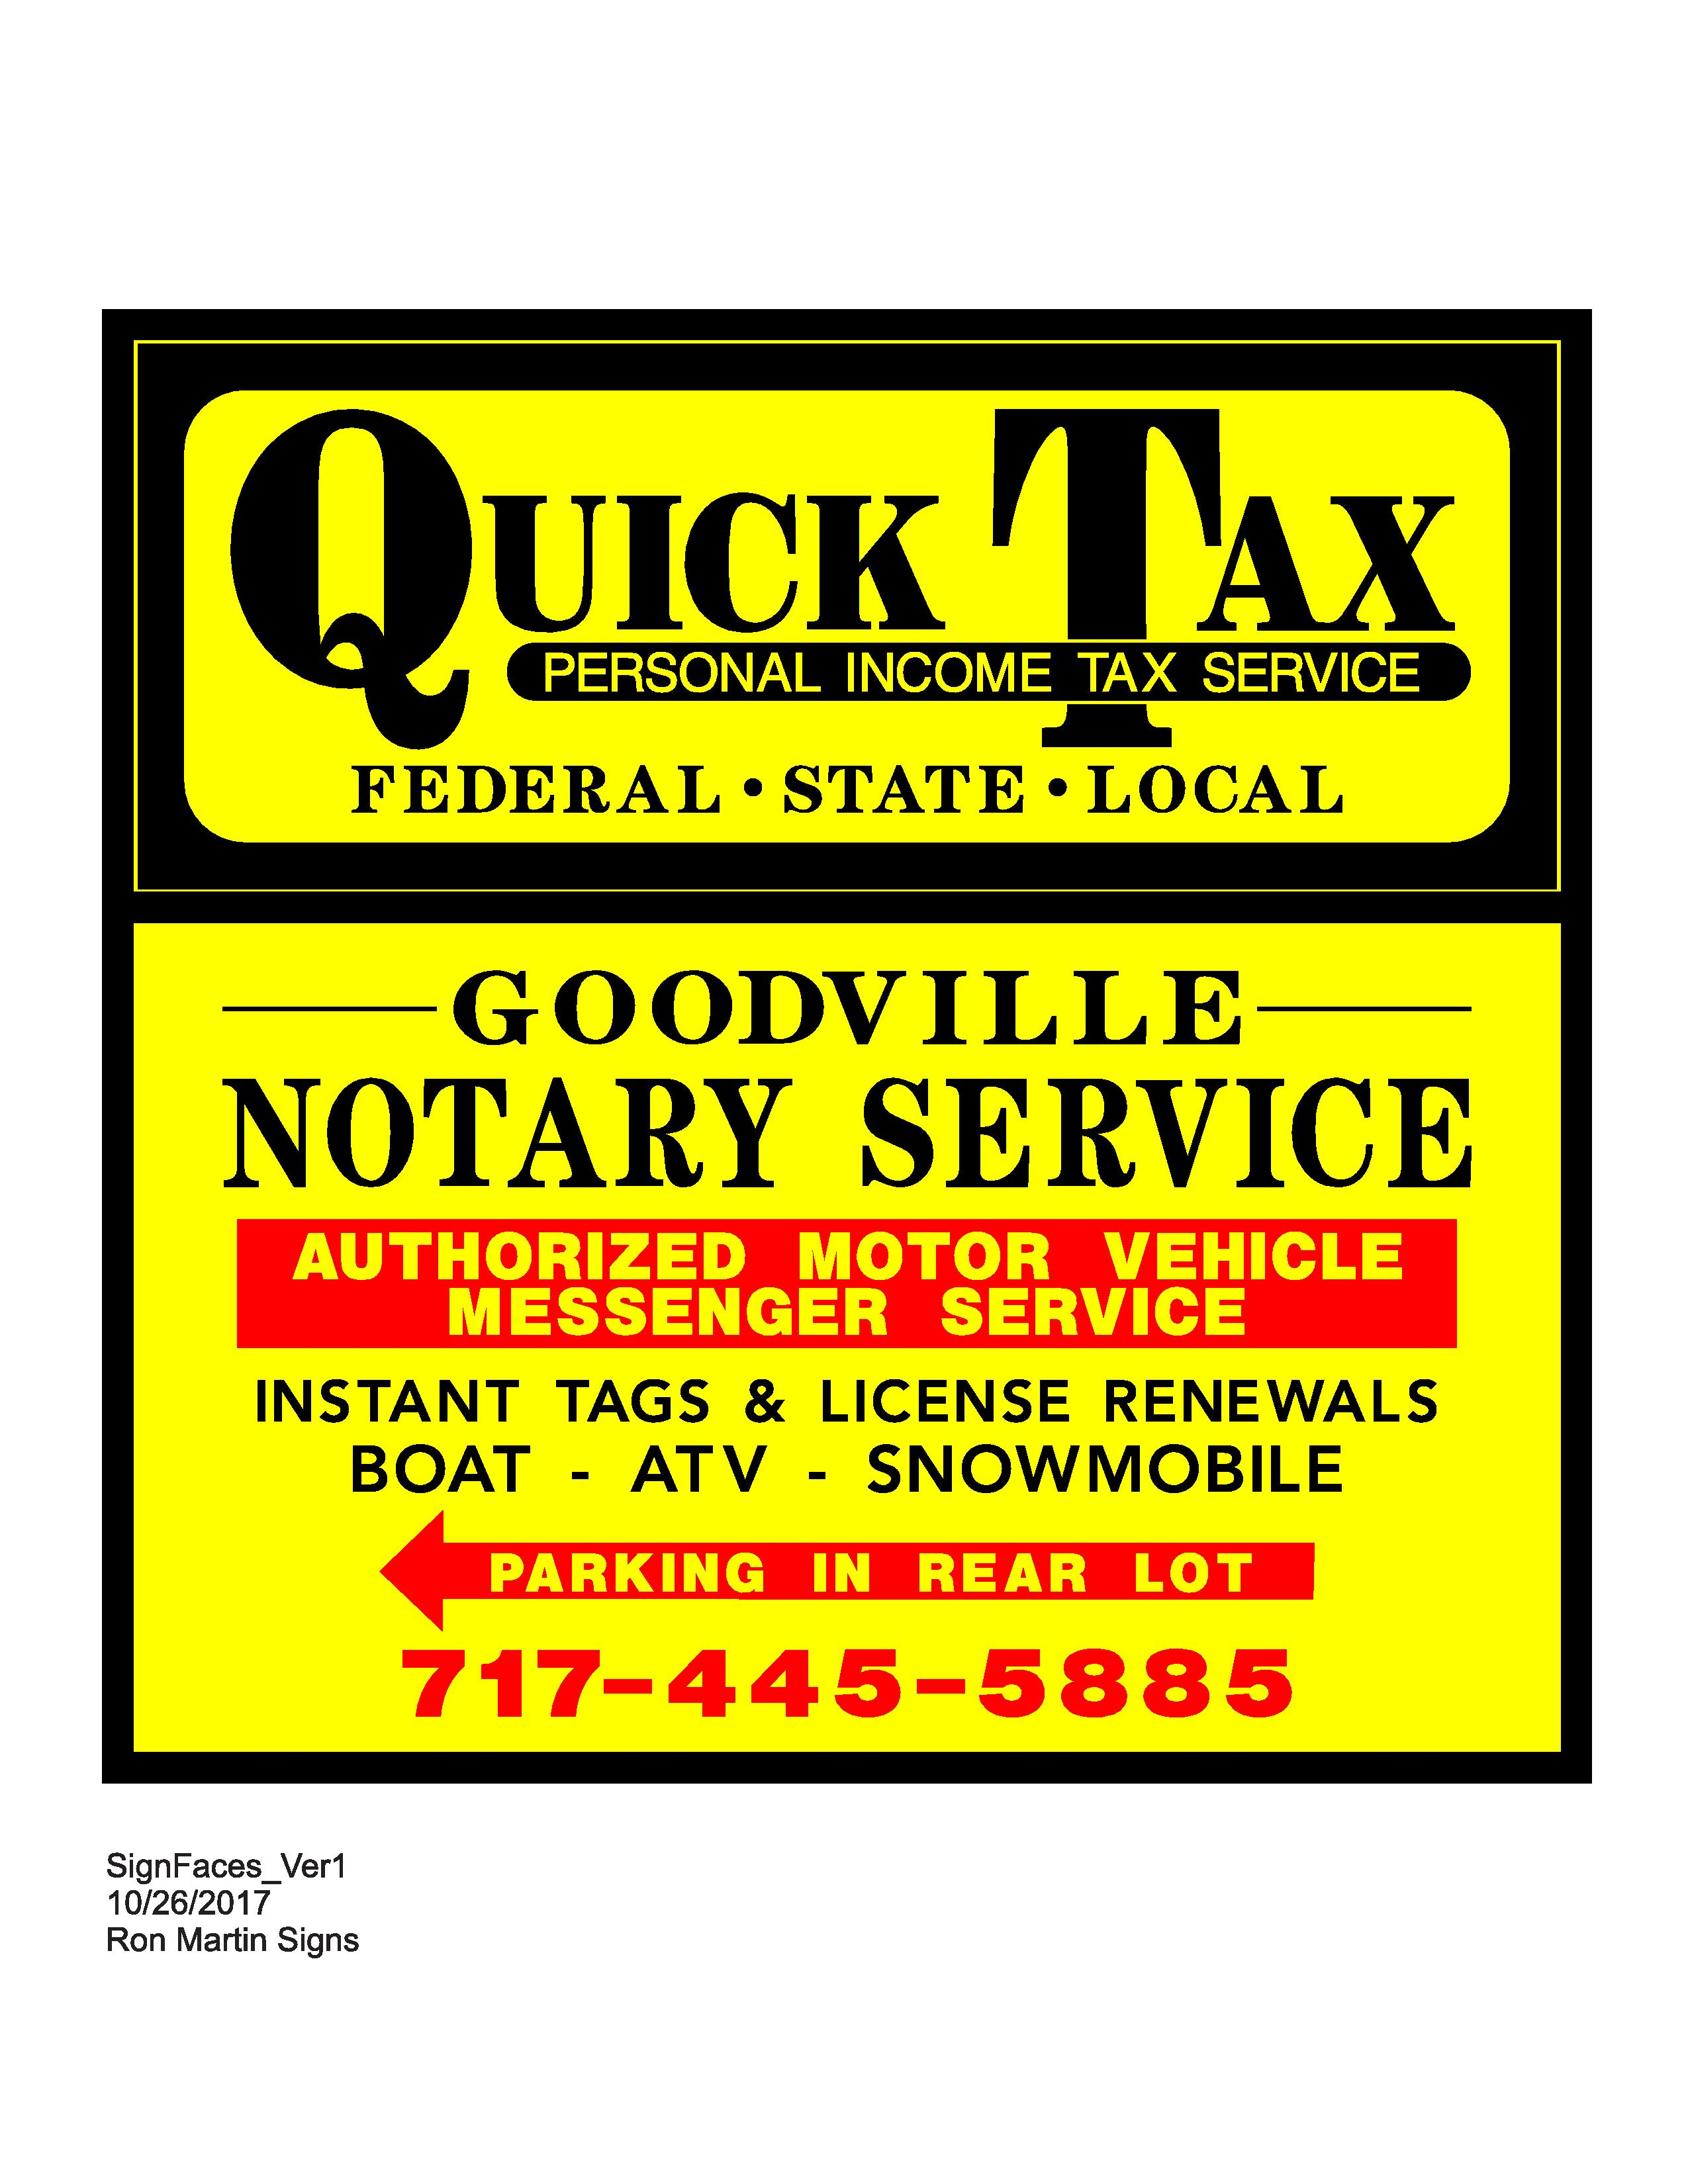 Goodville Notary Service